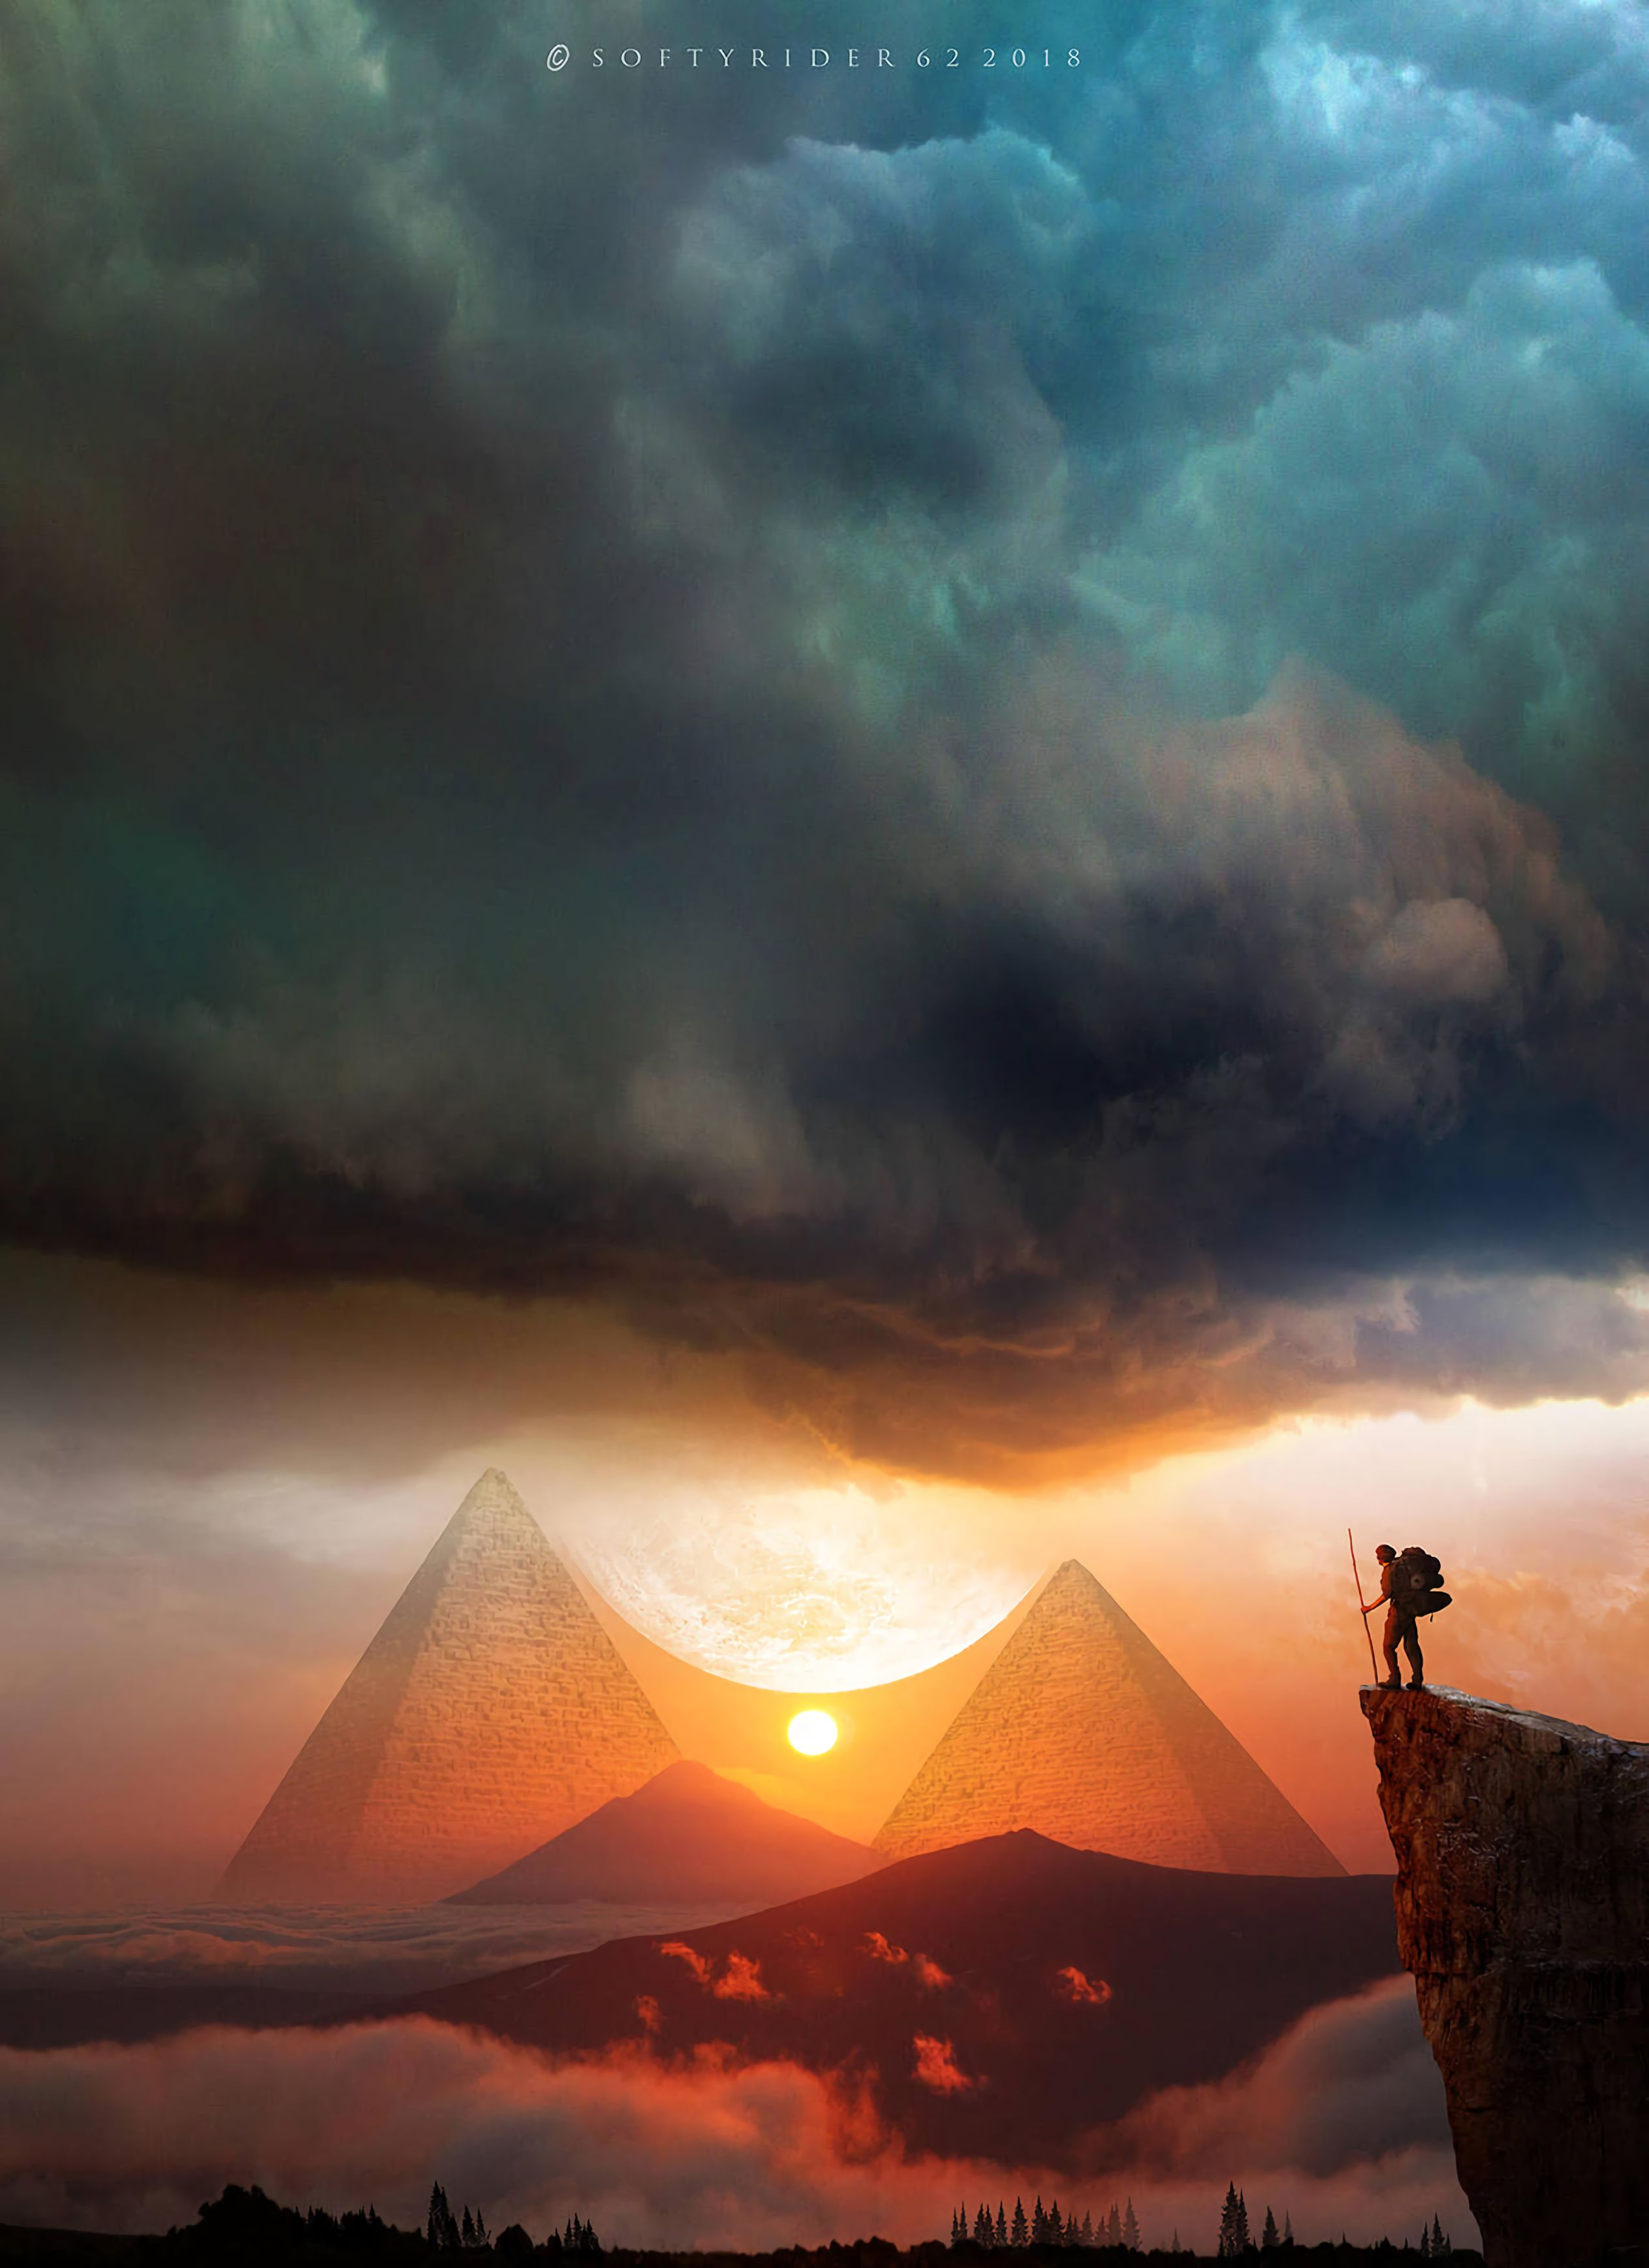 112371 download wallpaper Landscape, Sunset, Art, Clouds, Pyramids, Journey, Hills screensavers and pictures for free